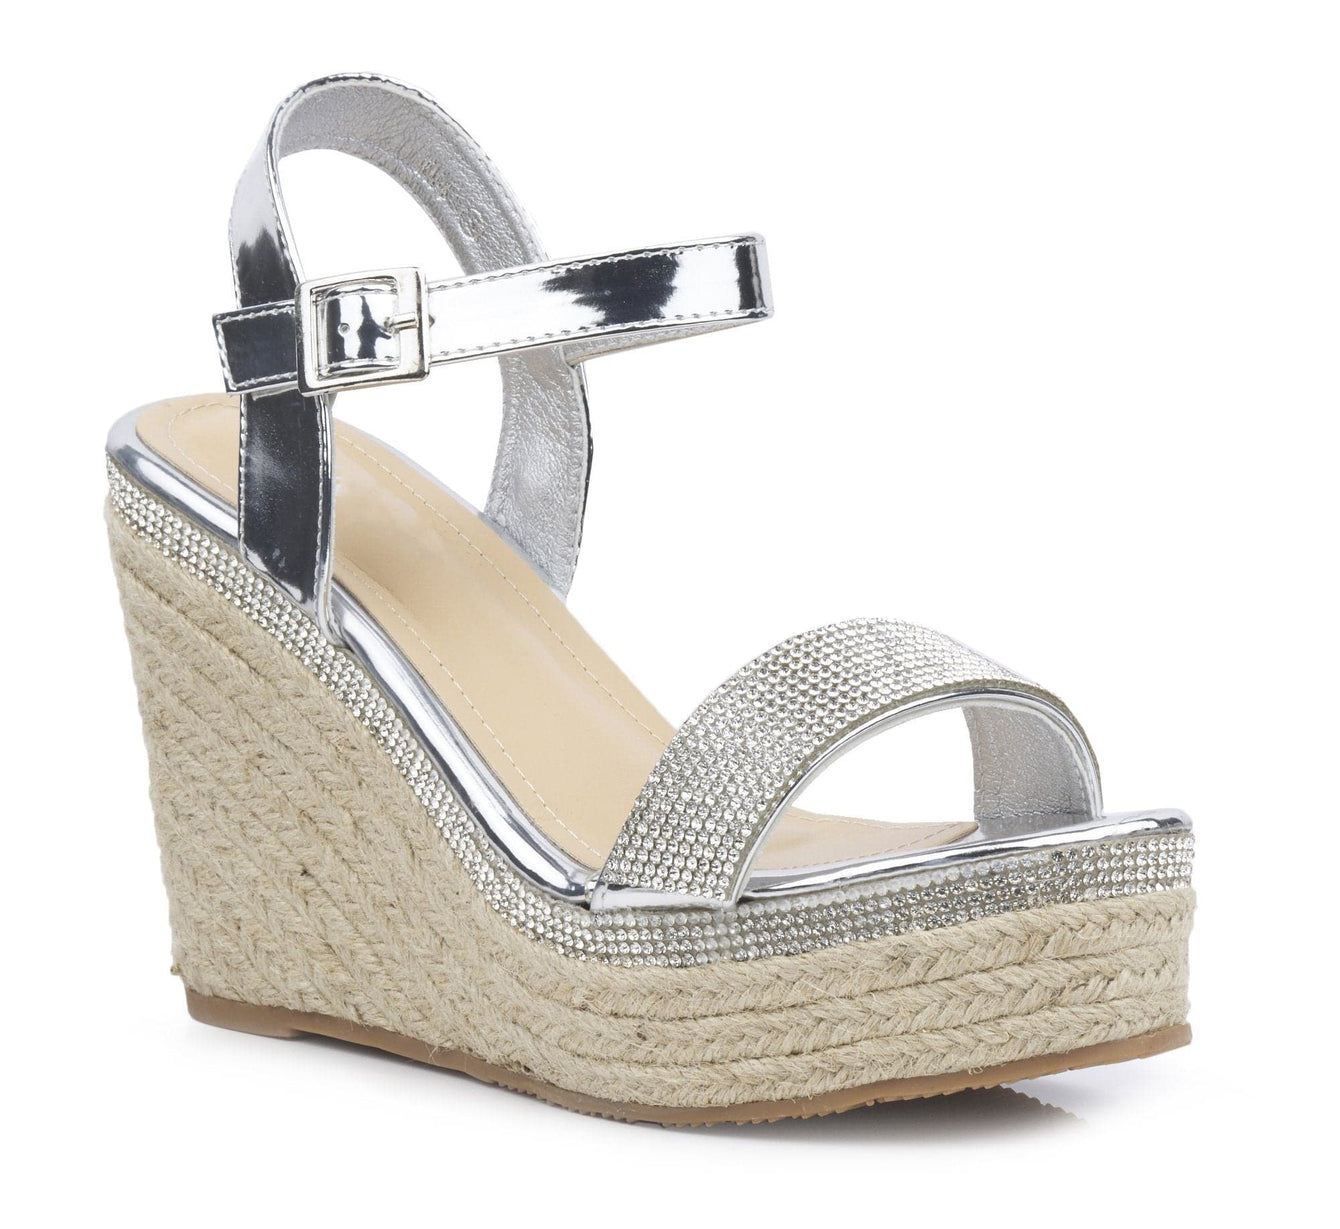 Espadrille Diamante Trim Wedge Sandal in Silver